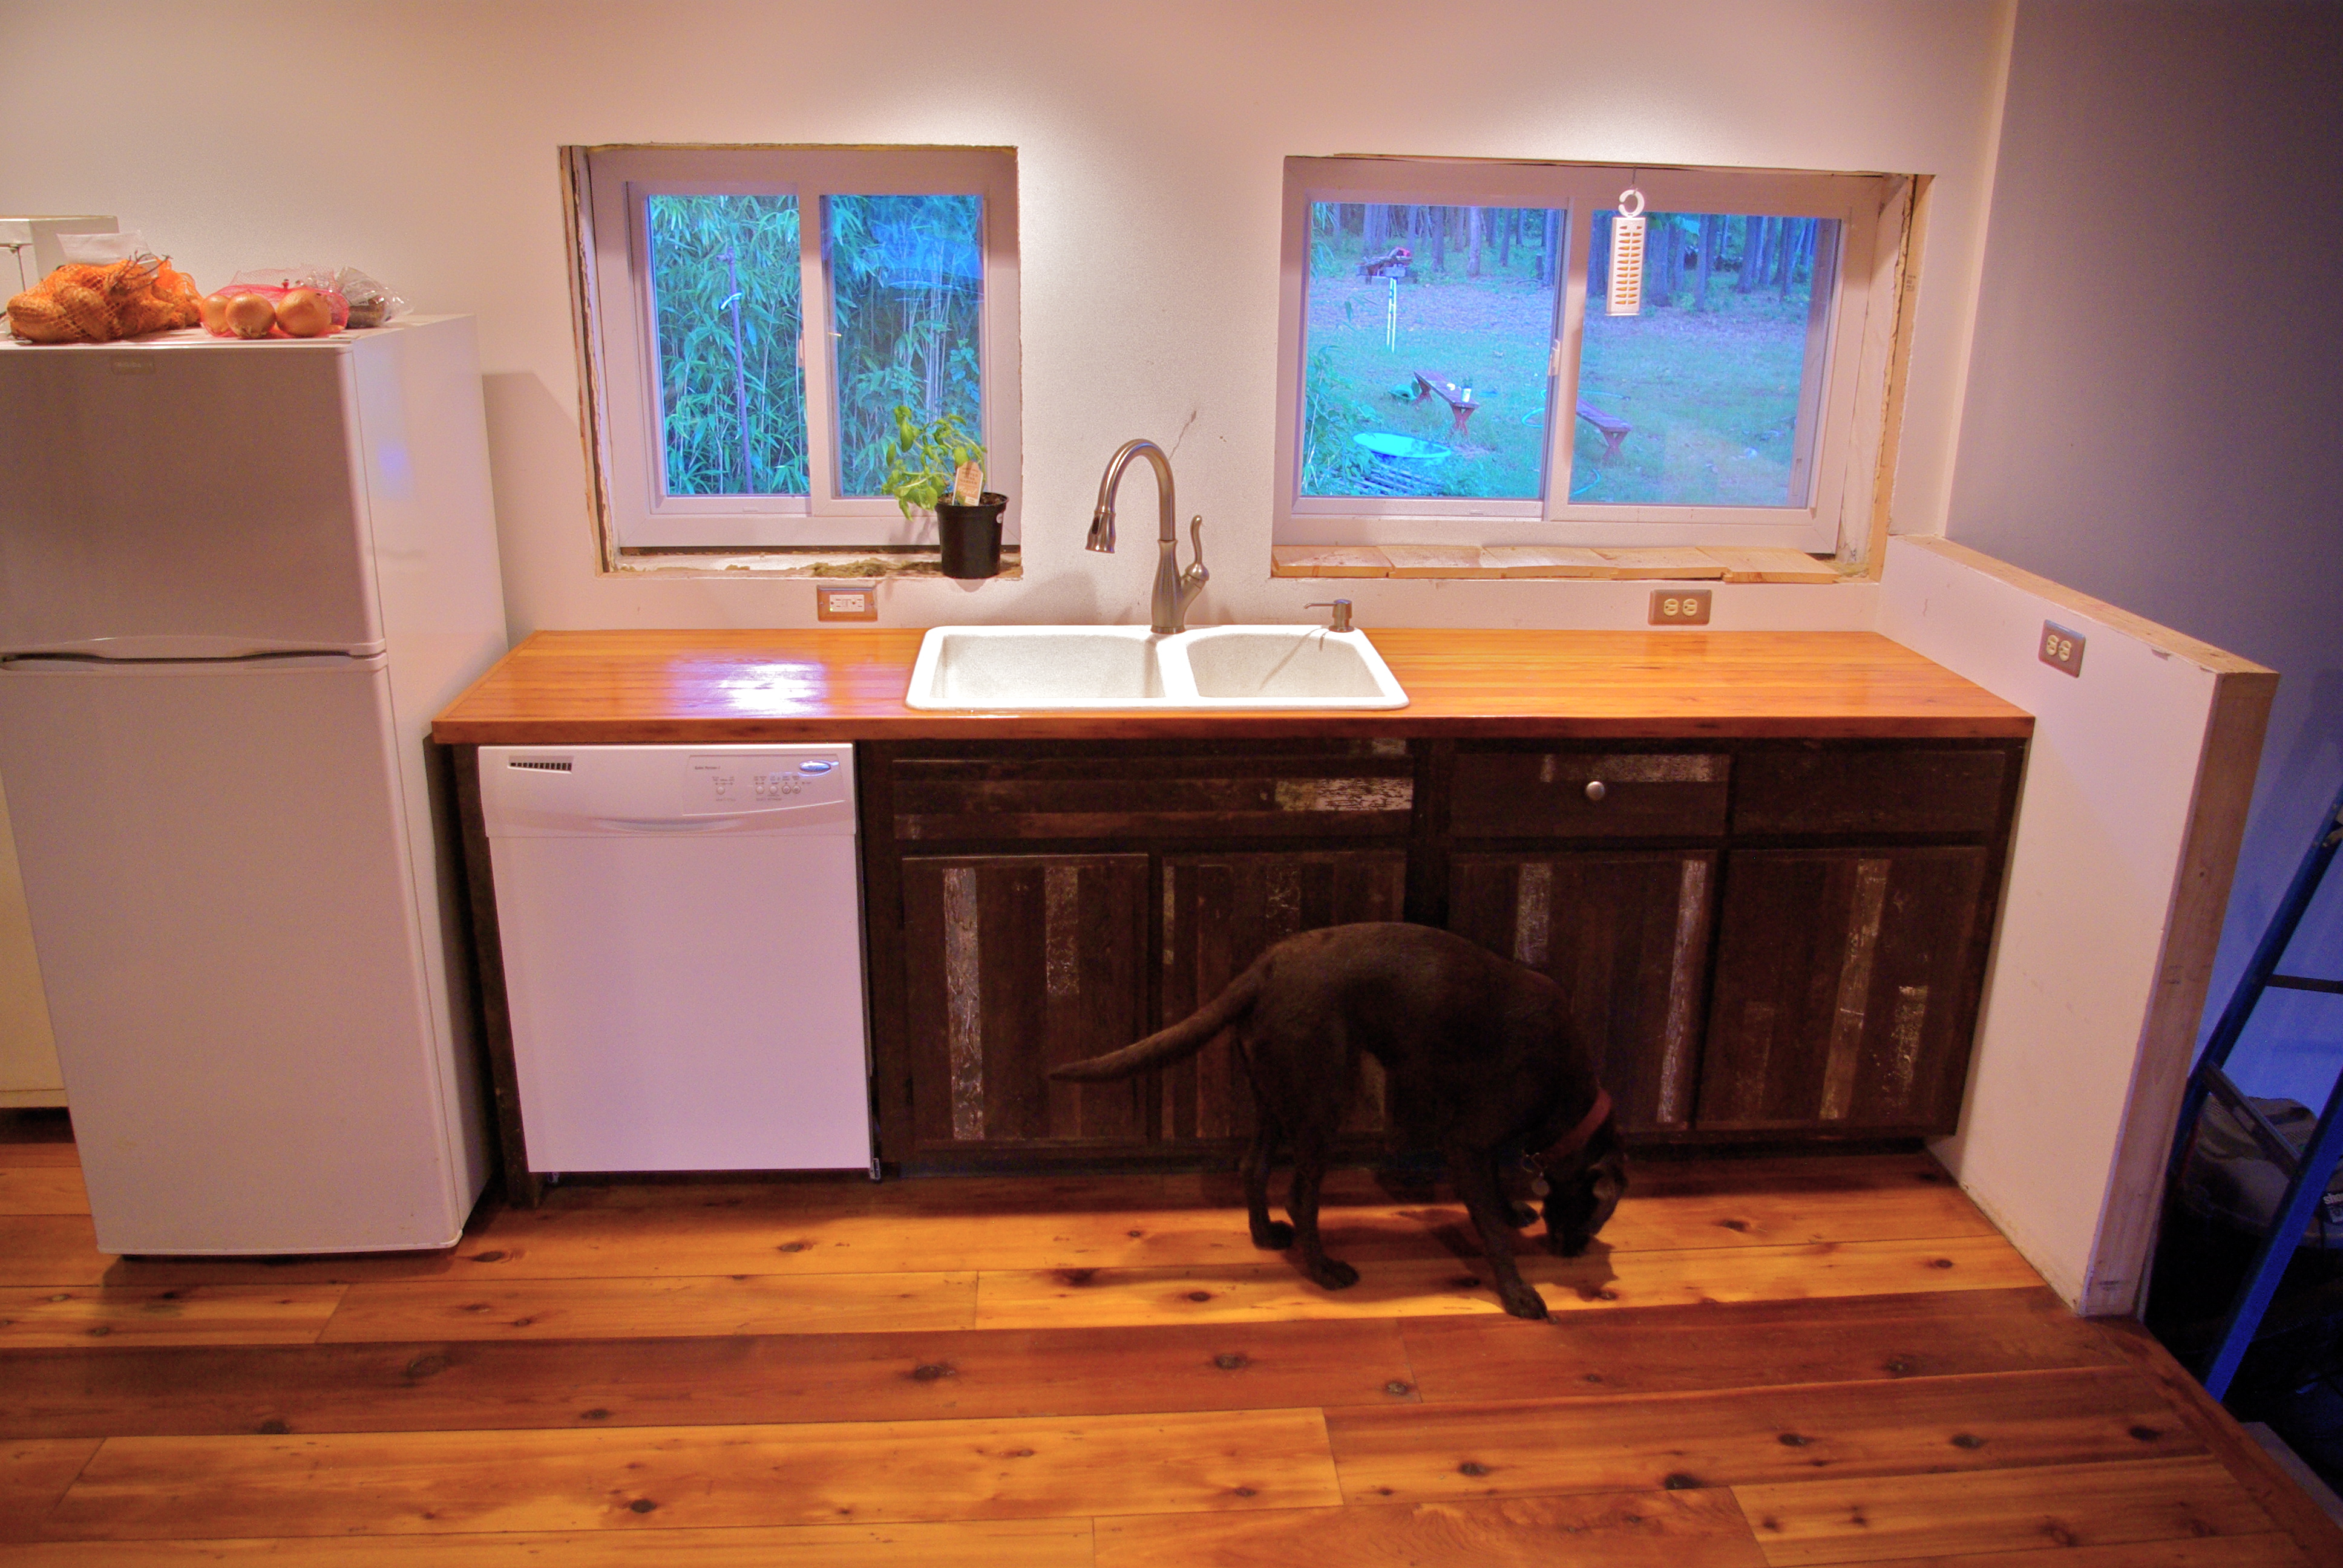 Banjo Bathroom Countertops A Banjo And A Fiddle | Just Another Wordpress.com Weblog